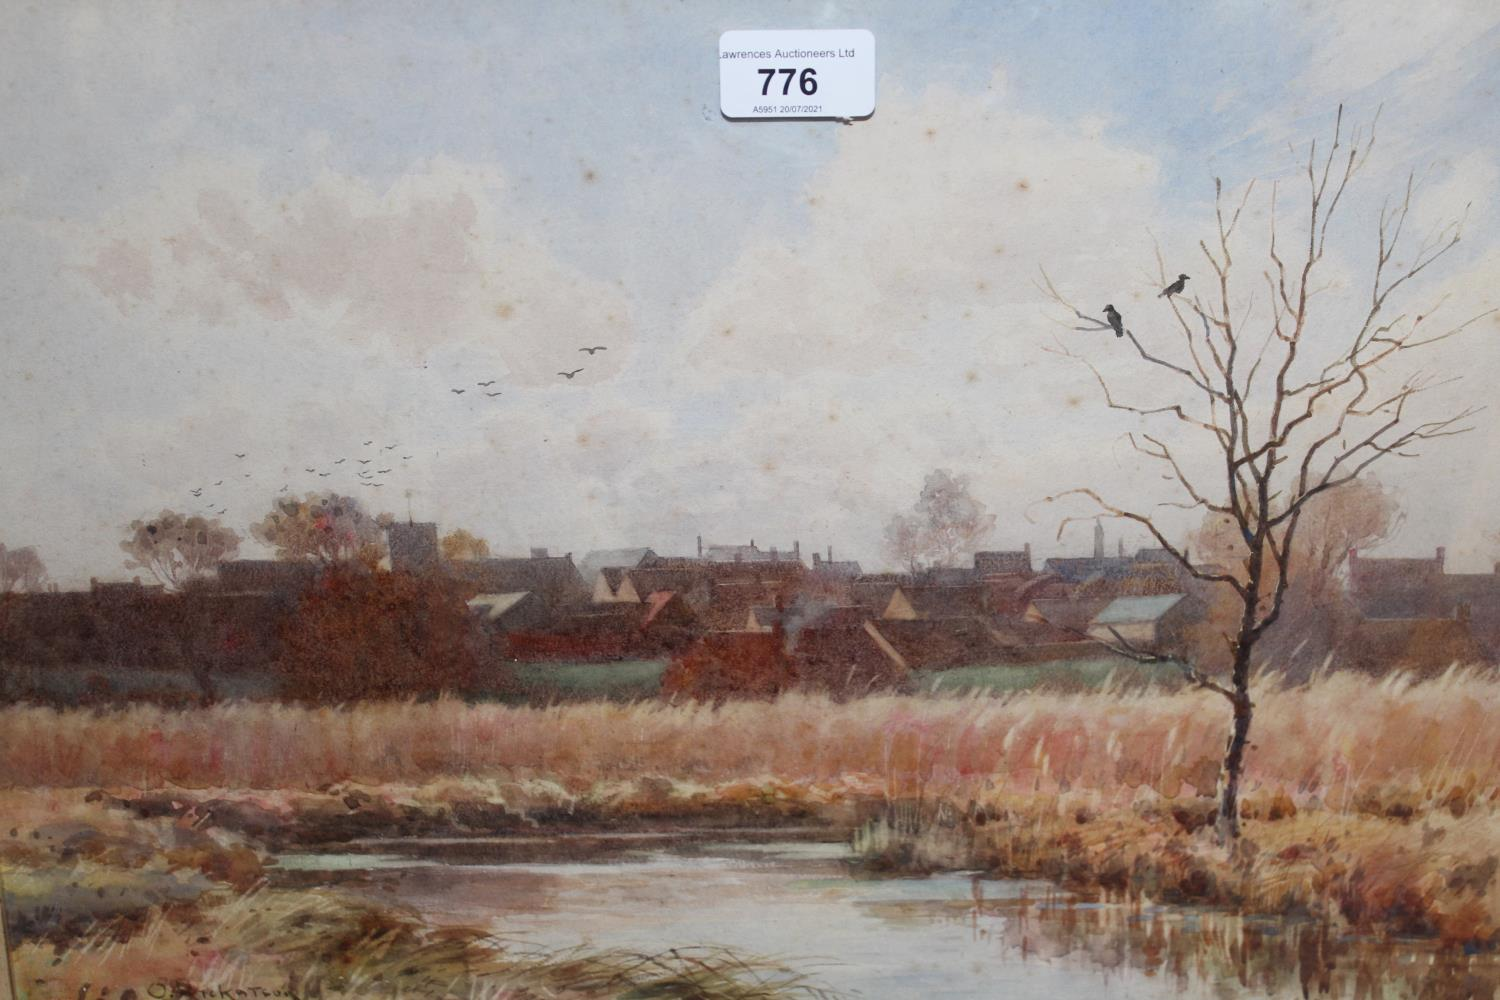 Octavius Rickatson, watercolour, river landscape with a distant town, signed, 11.25ins x 17.25ins, - Image 2 of 2